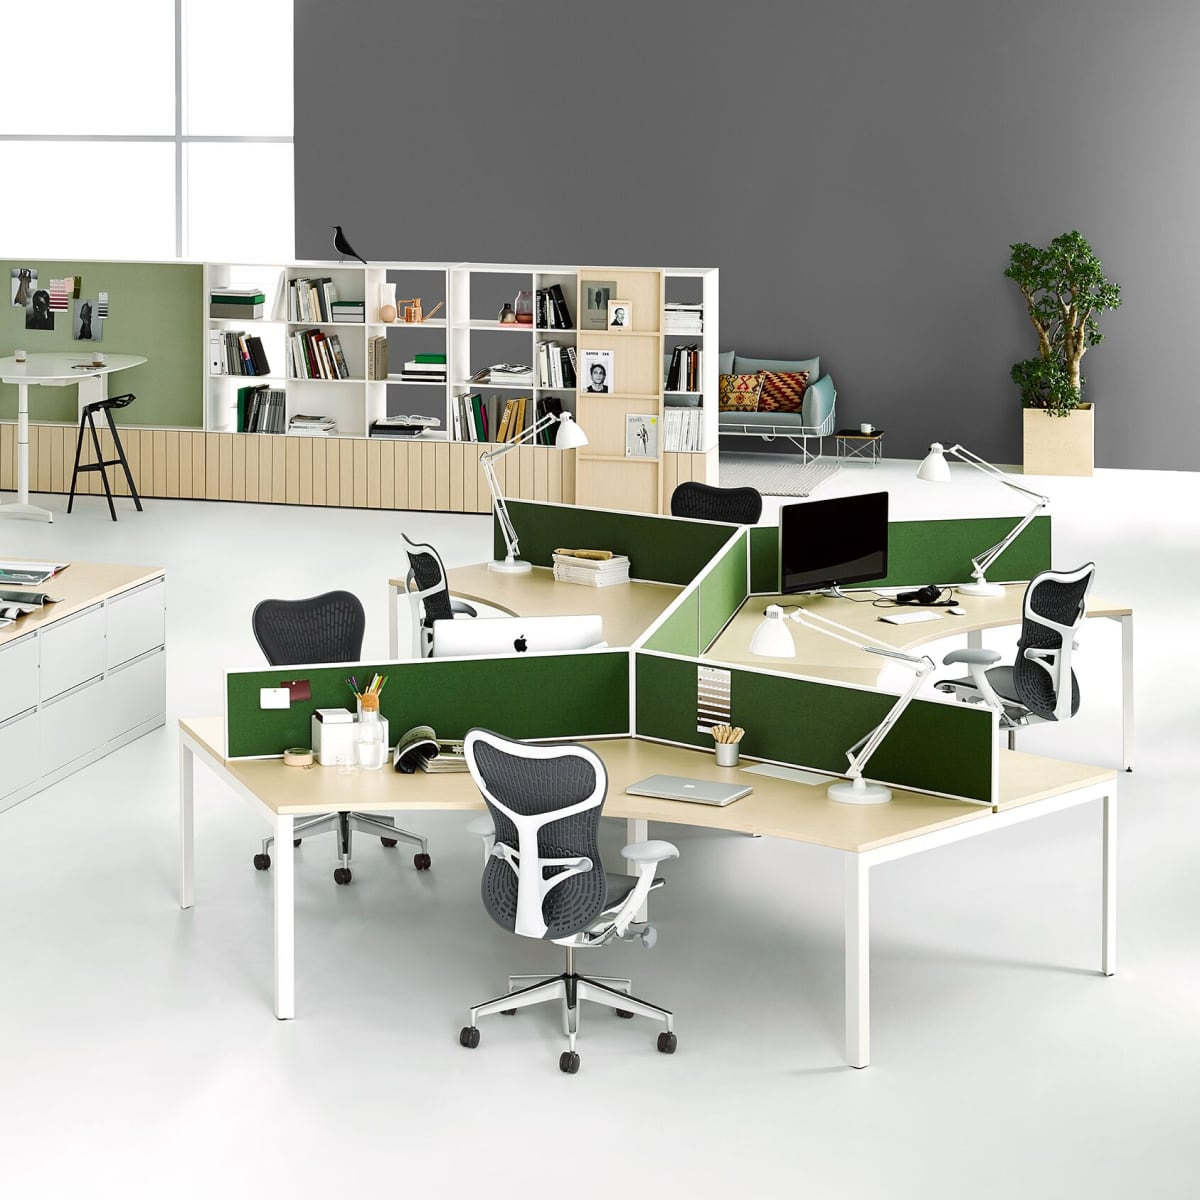 Workstations with green privacy screens and dark blue Mirra 2 office chairs.